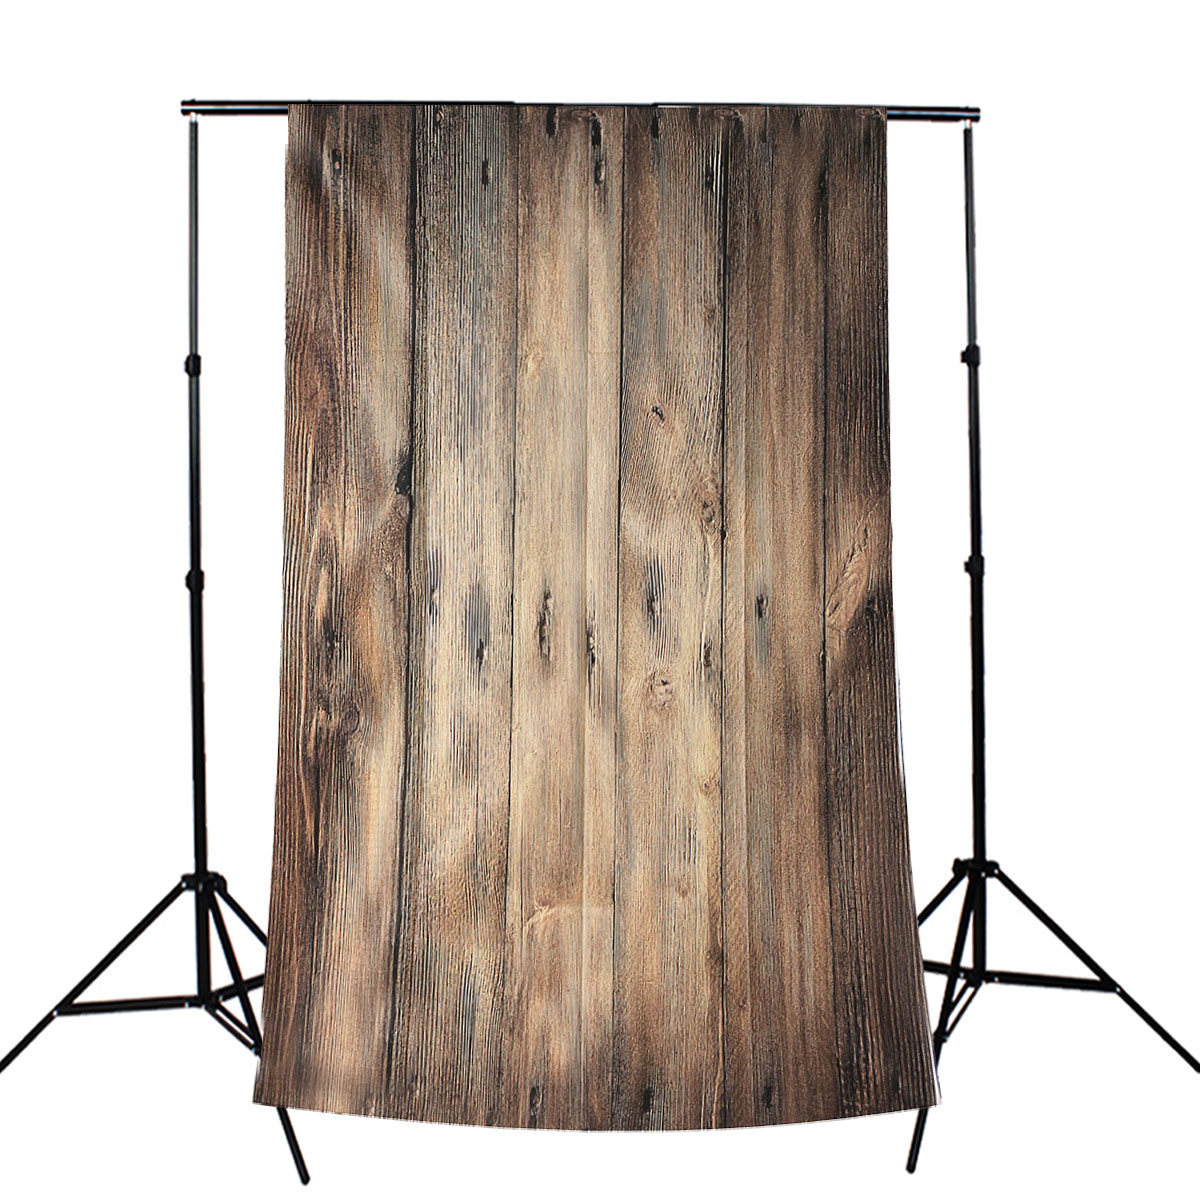 3x5FT Retro Vinyl Photography Backdrop Photo Wooden Floor Studio Prop Background